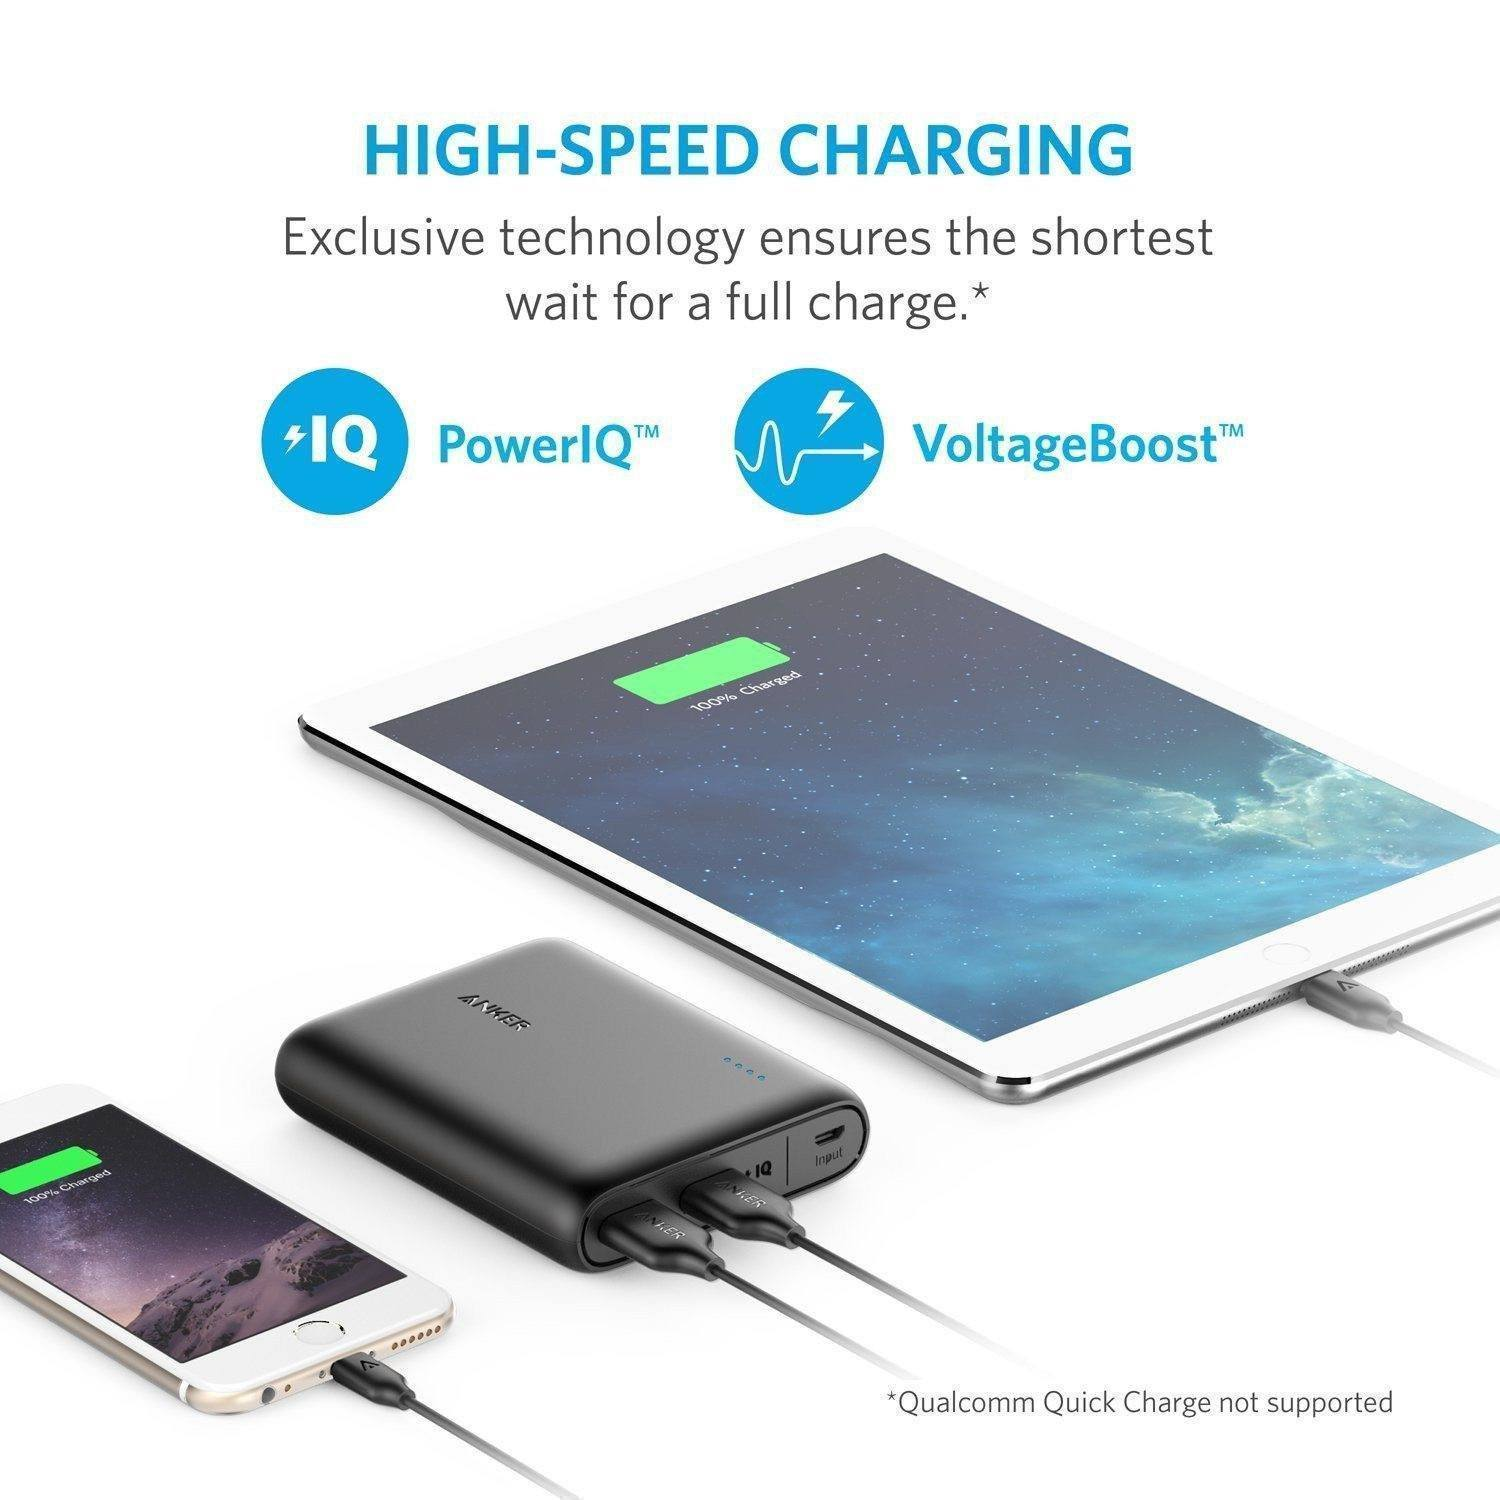 Anker 10400 Portable Charger - 2-Port Ultra Portable Phone Charger Power Bank With PowerIQ And VoltageBoost Technology For IPhone, IPad, Samsung Galaxy And More